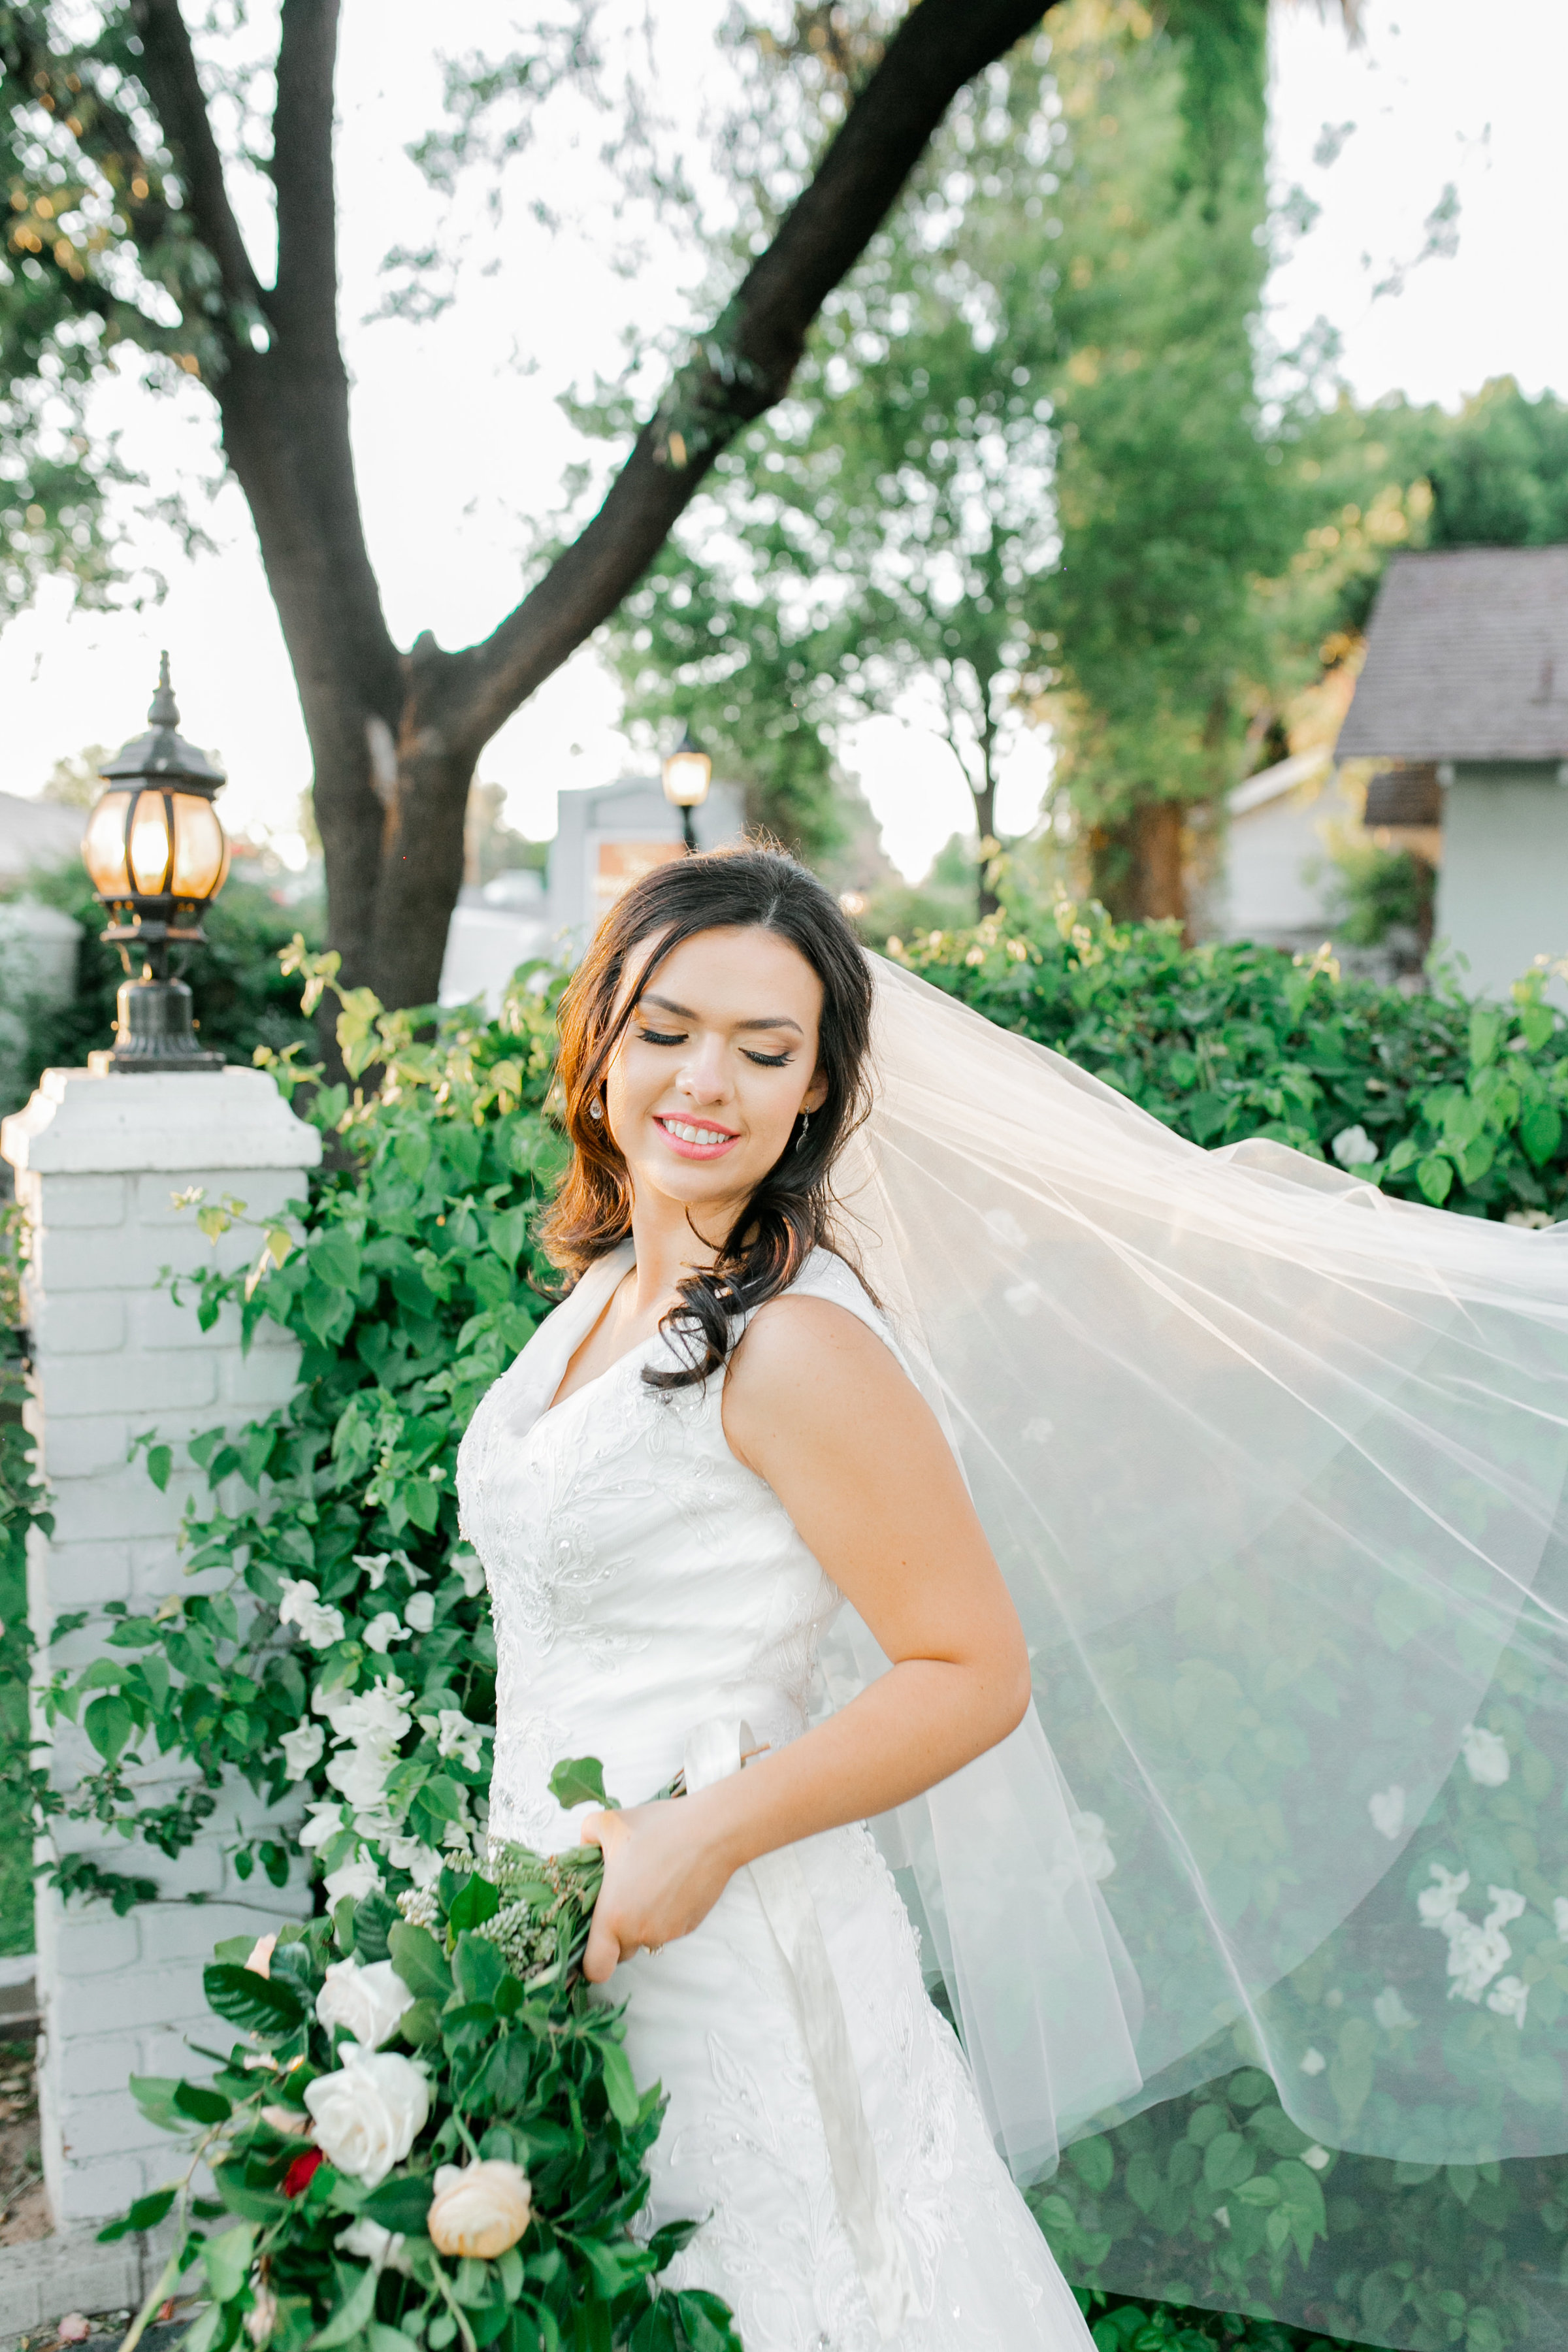 Karlie Colleen Photography - Claire & PJ Sneak Peak- The Wright House - Phoenix Arizona -148